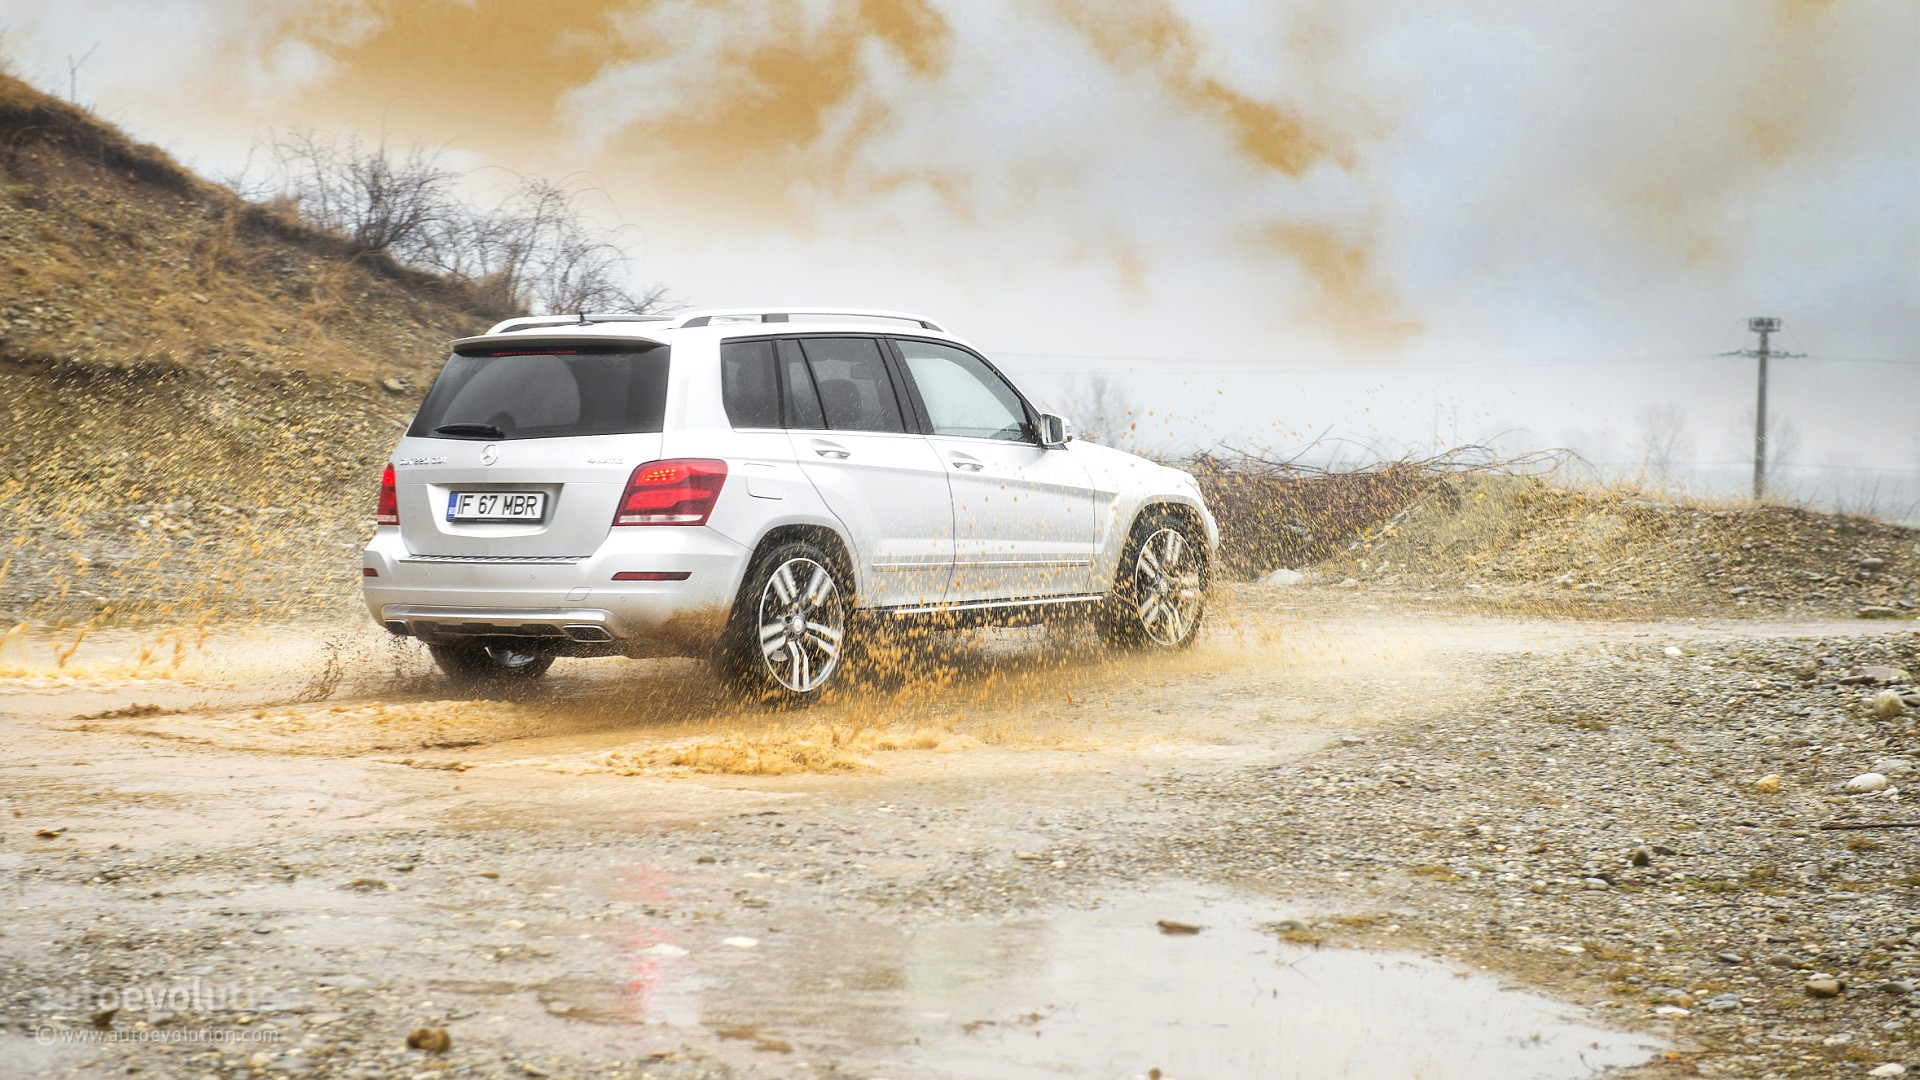 2015 MERCEDES-BENZ GLK-Class tested in off-road conditions